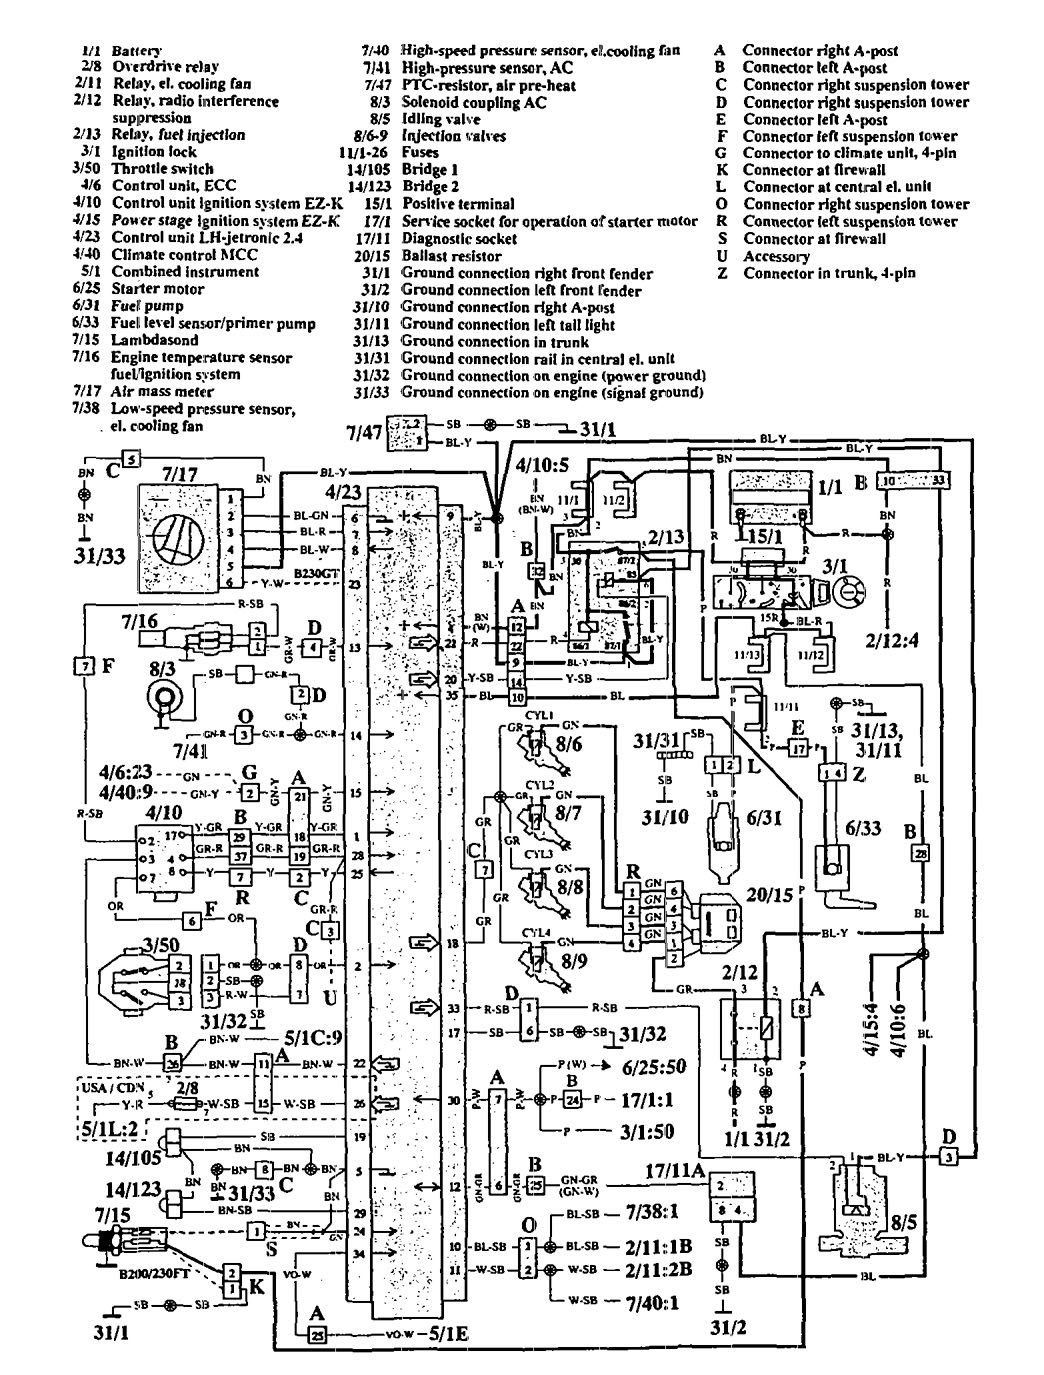 John Deere 350 Wiring Diagram Auto Electrical Fleetwood Rv Schematics Volvo 940 1992 Diagrams